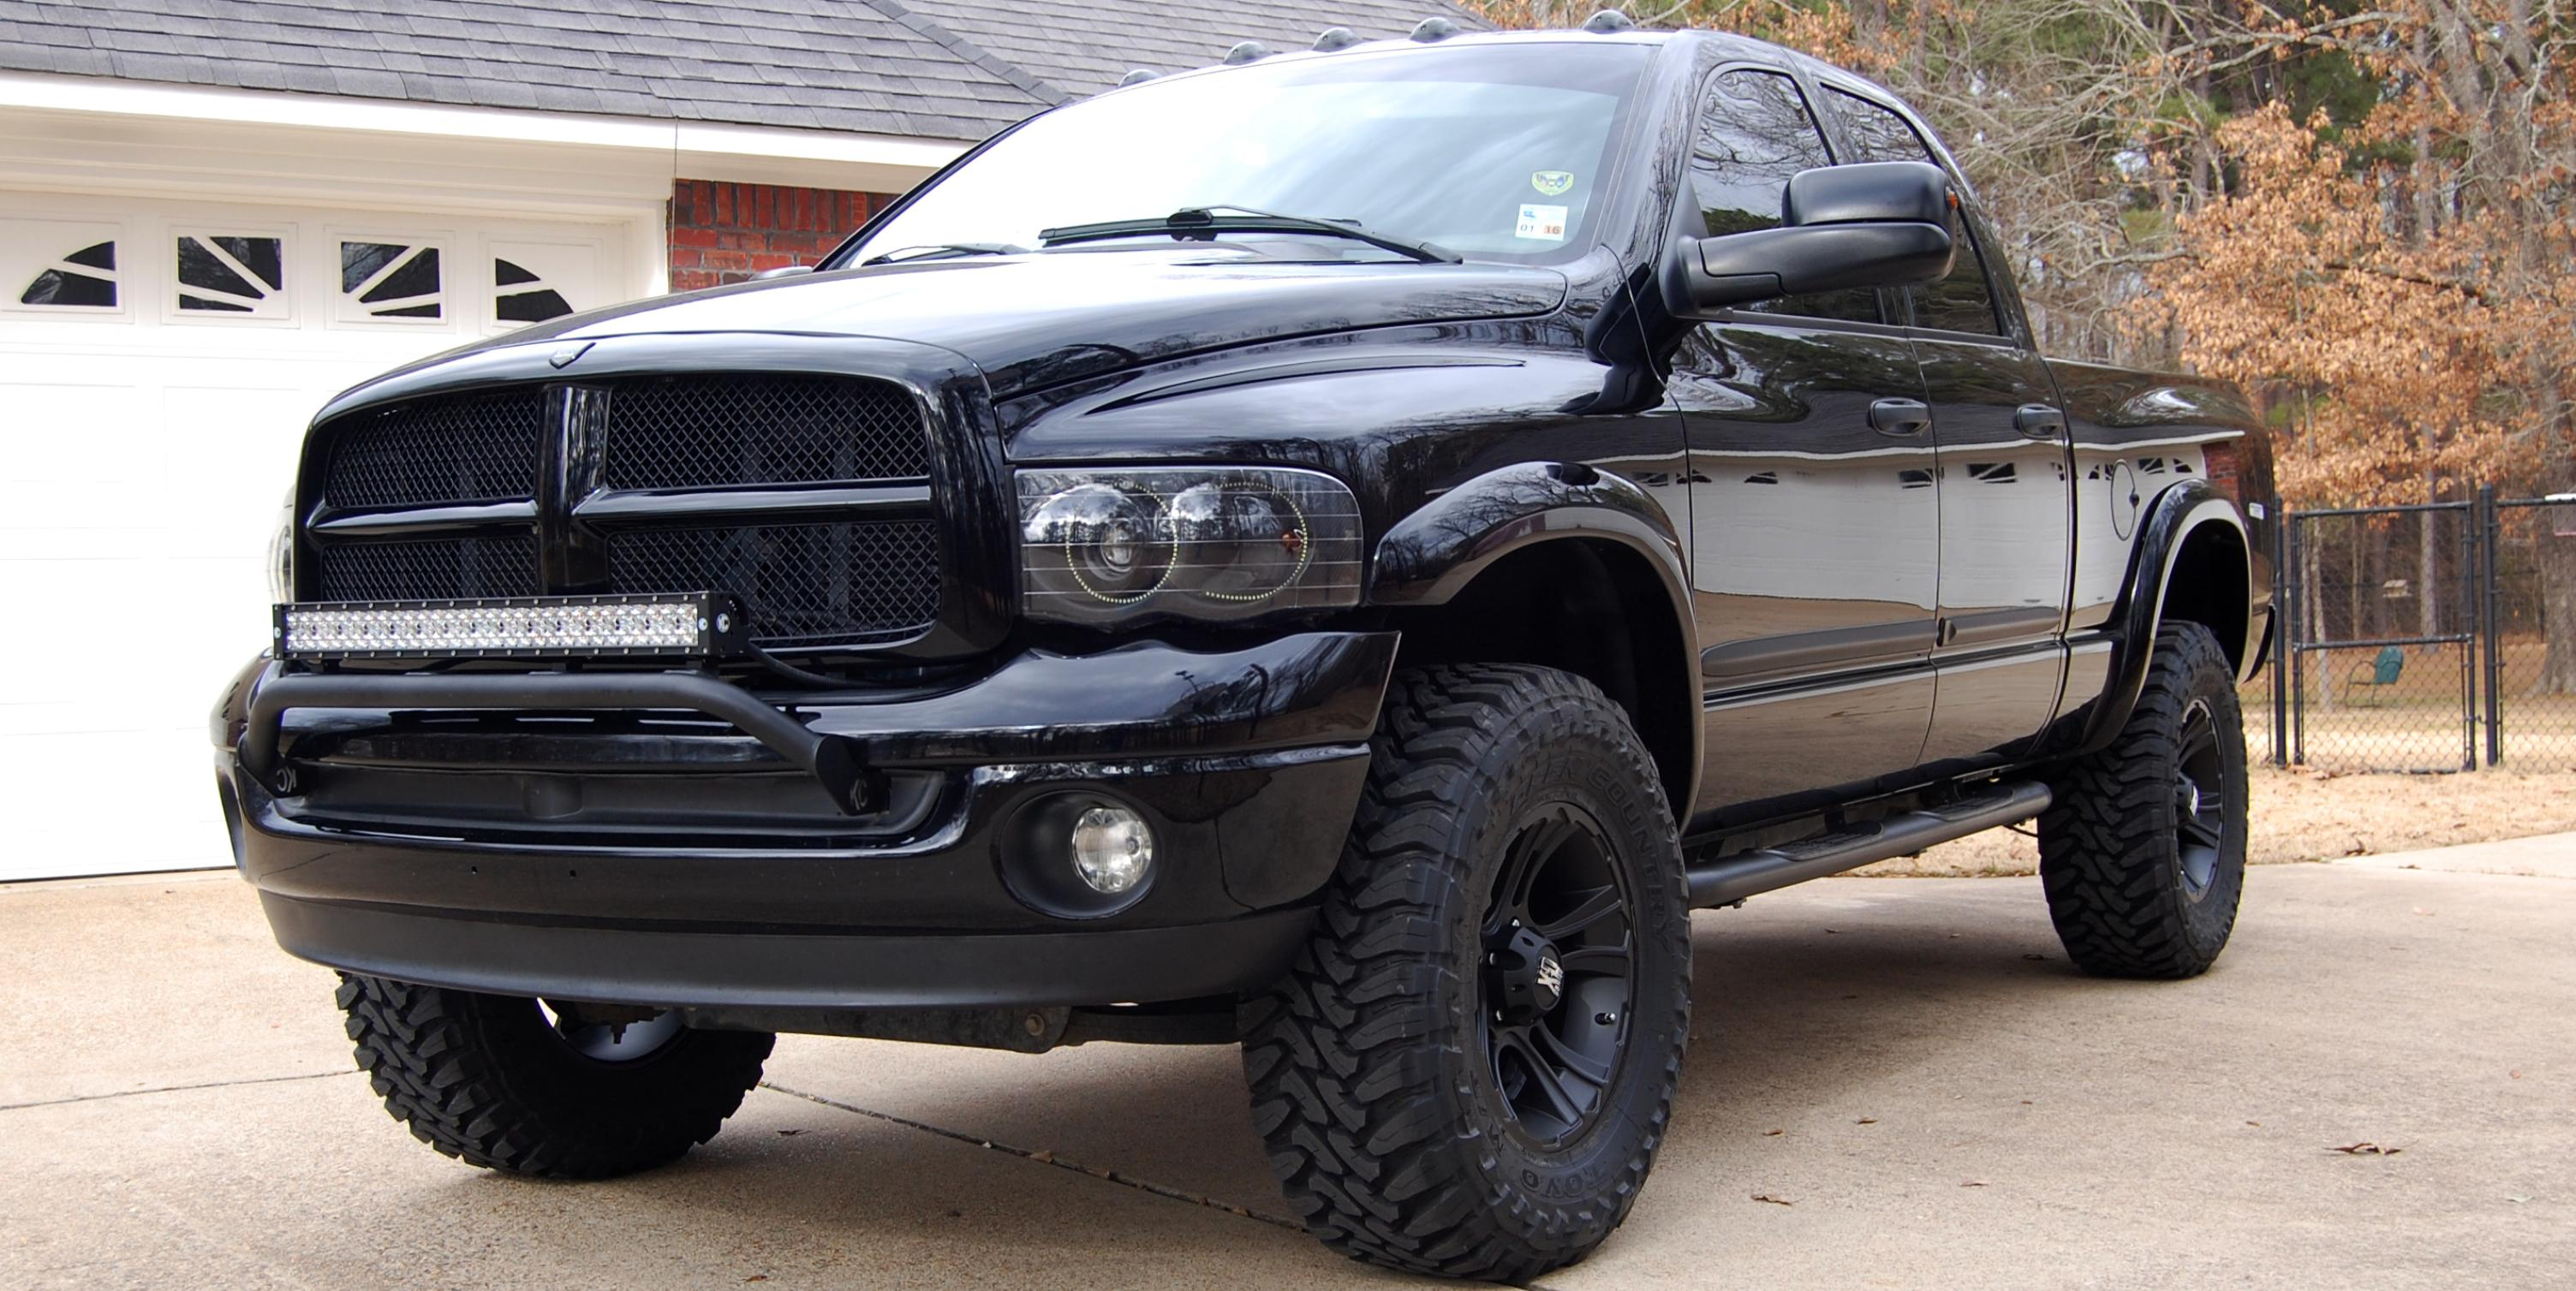 Black lifted 4wd